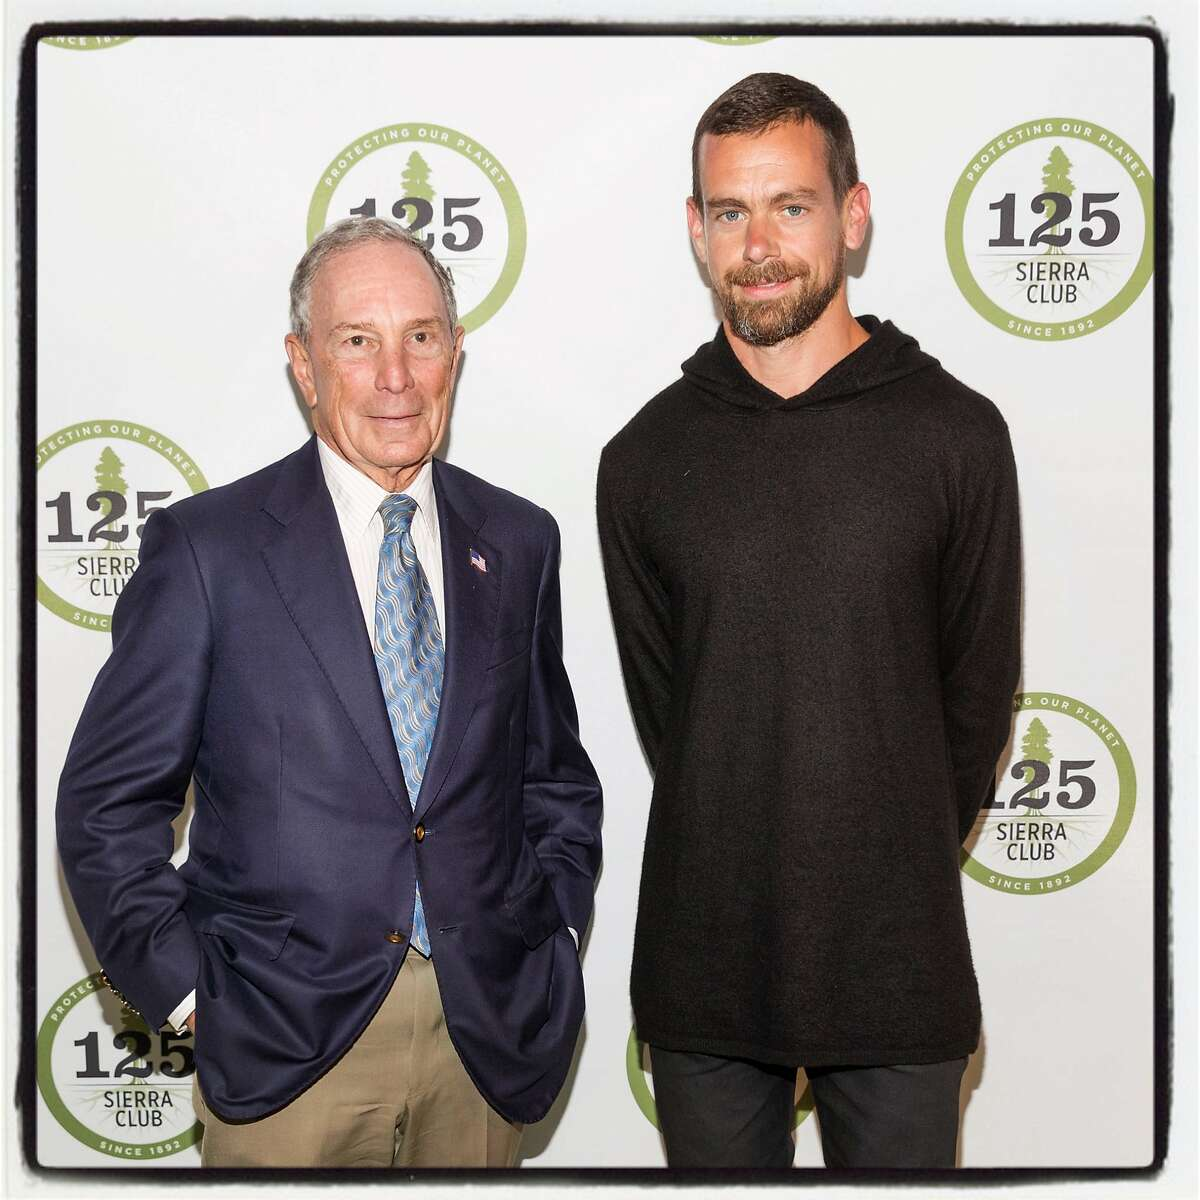 Philanthropist Michael Bloomberg (left) and Twitter CEO Jack Dorsey at The Sierra Club's 125th Anniversary Trail Blazers Ball. May 18, 2017.